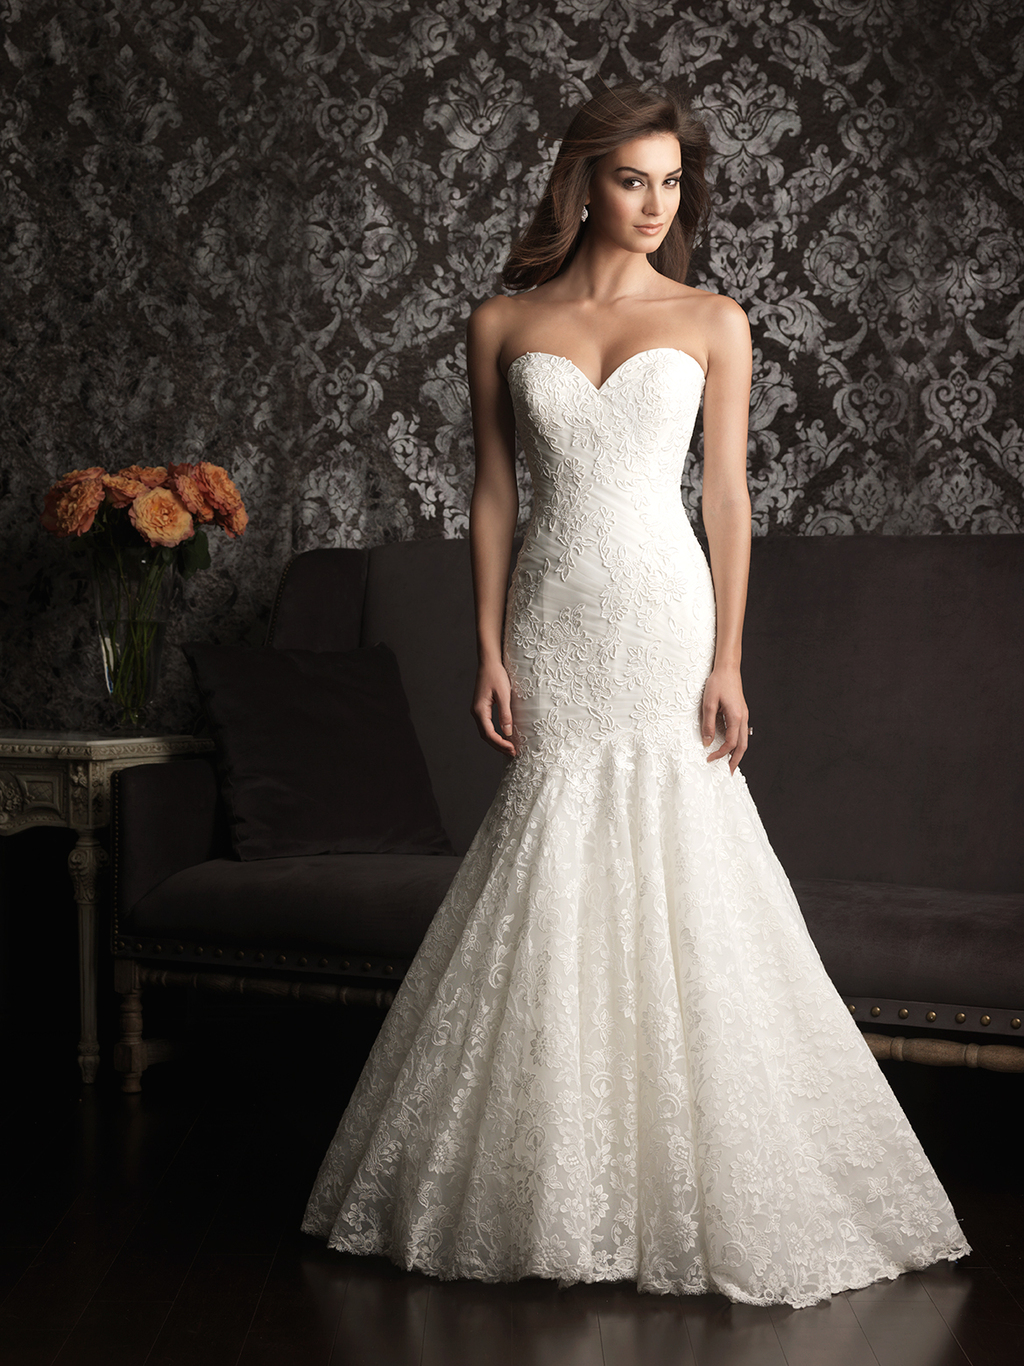 Allure-bridals-wedding-dress-bridal-gown-allure-collection-sweetheart-9023f.full